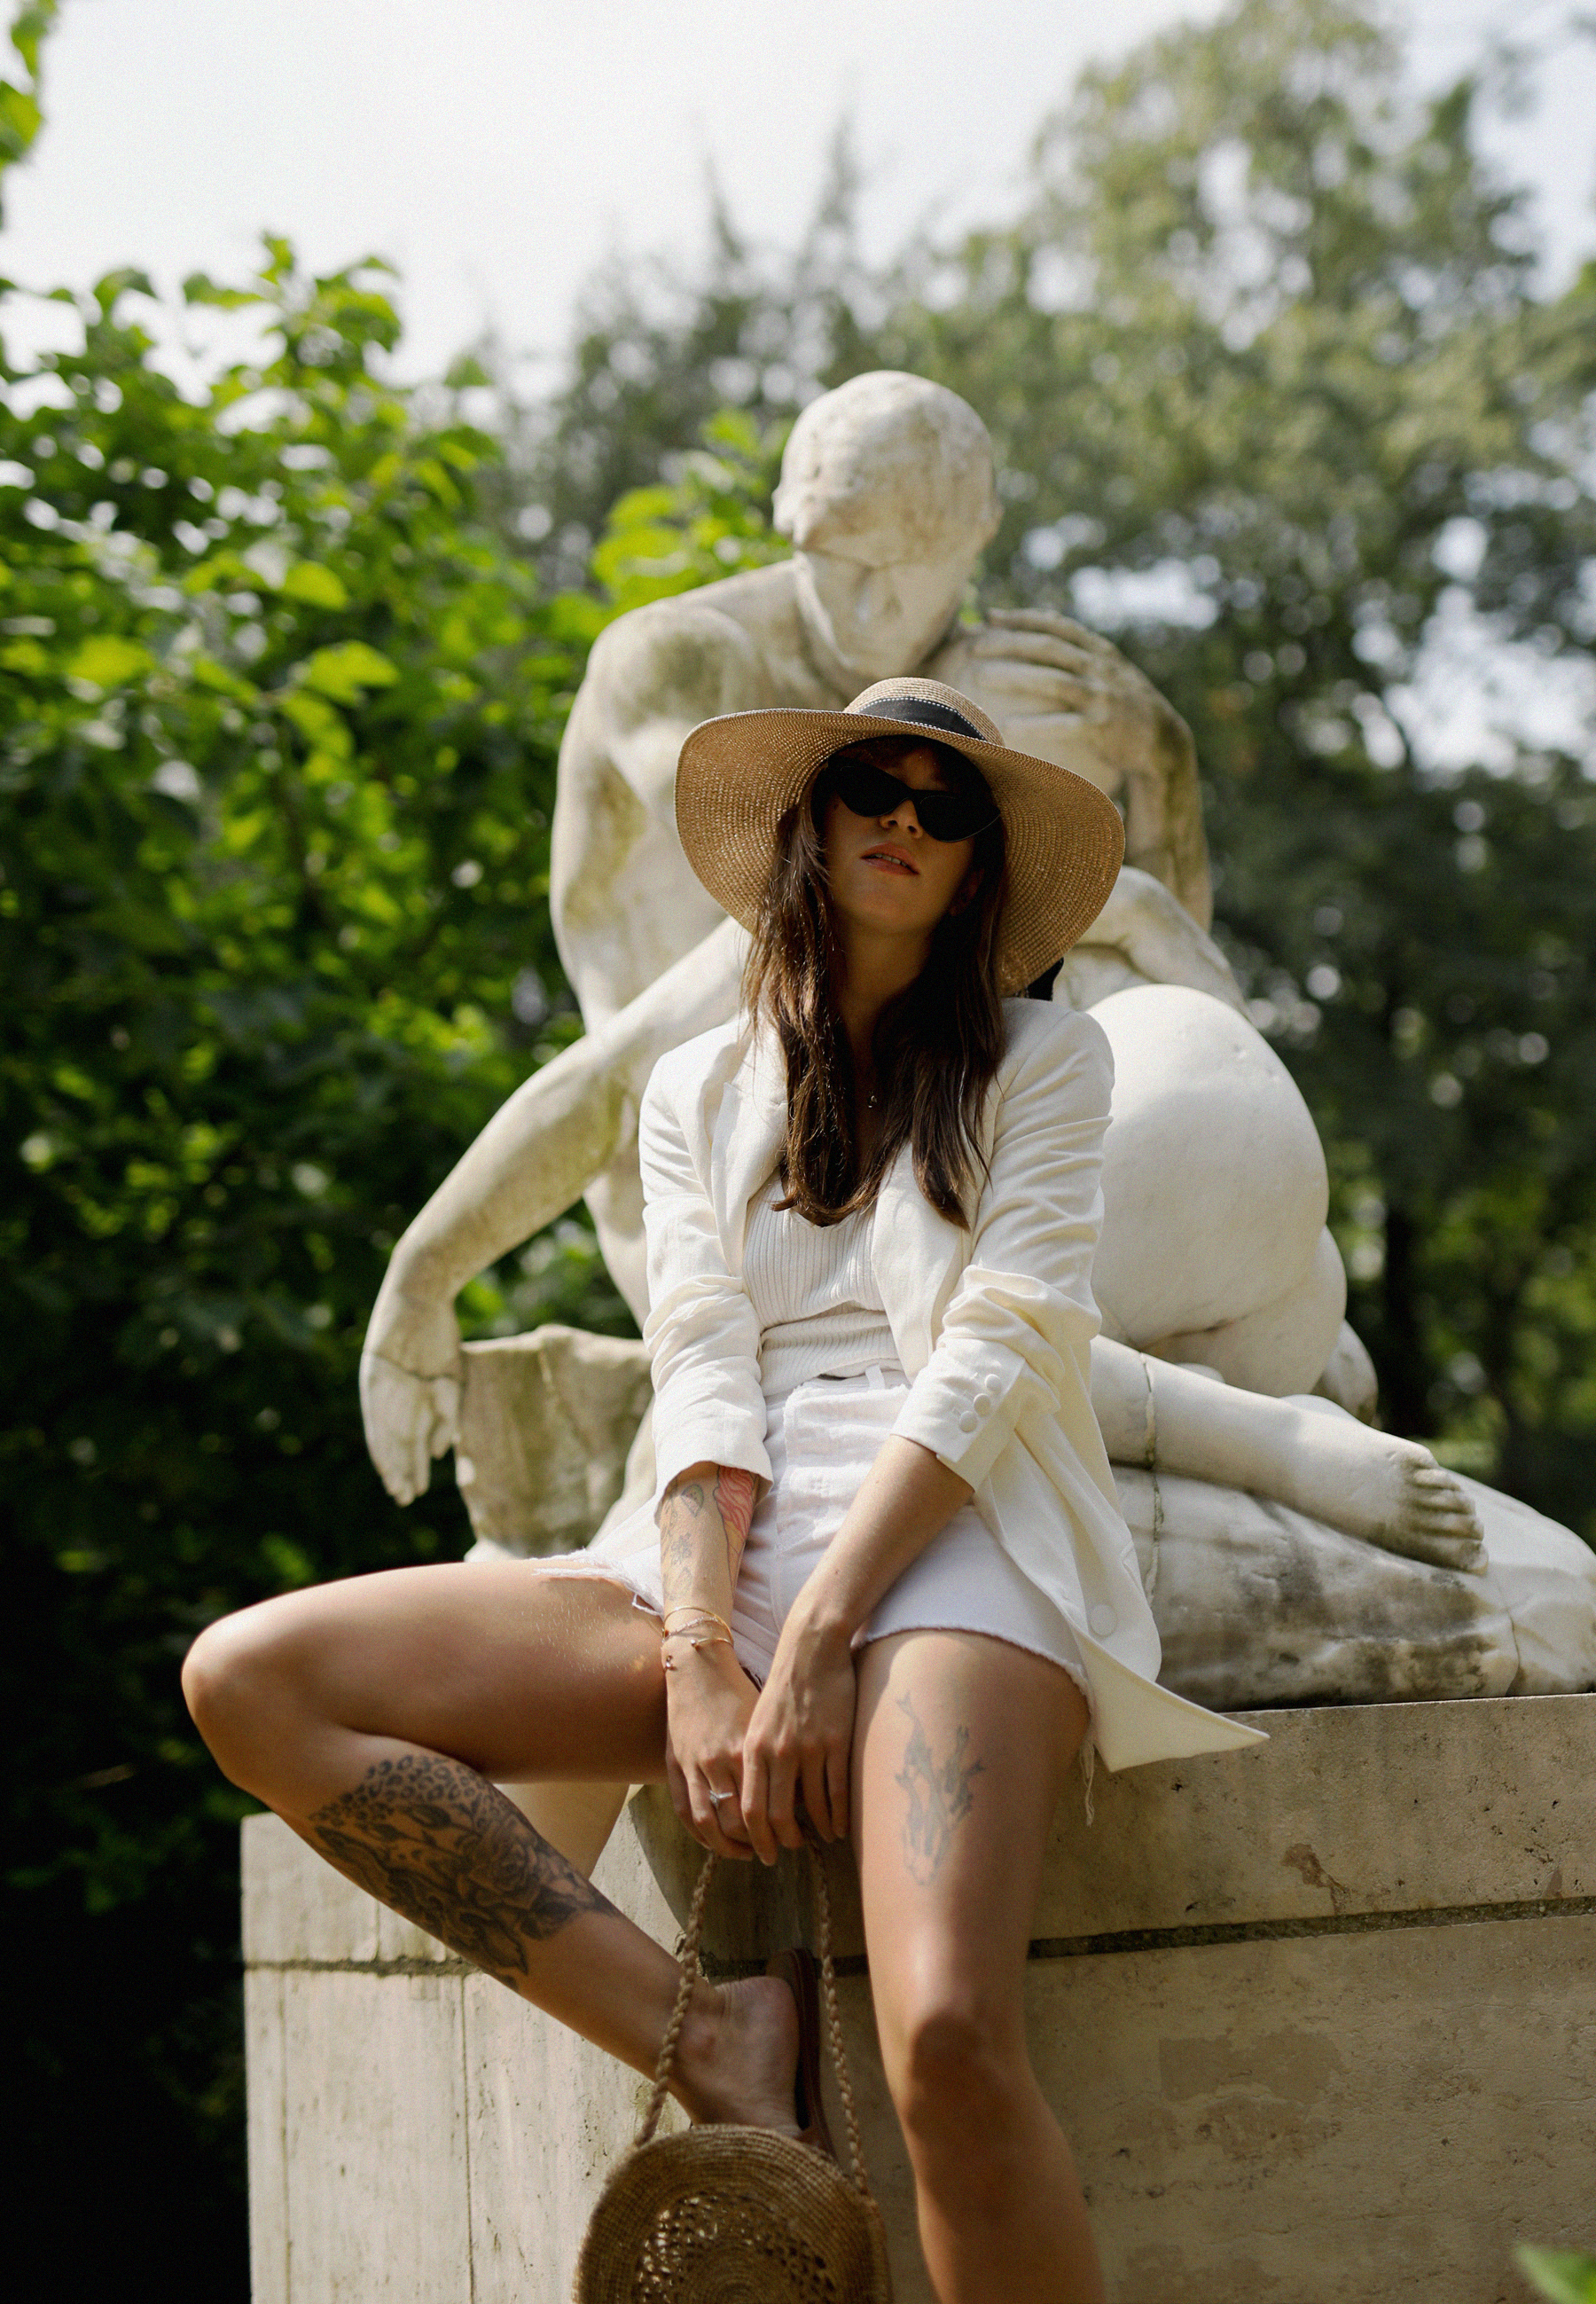 all white & other stories shorts blazer straw hat summer bag rouje hermes oran sandals statue marble dusseldorf düsseldorf dus art artist artsy fashionblogger modeblog jane birkin jeanne damas outfit mode inspiration look seventies ricarda schernus 7